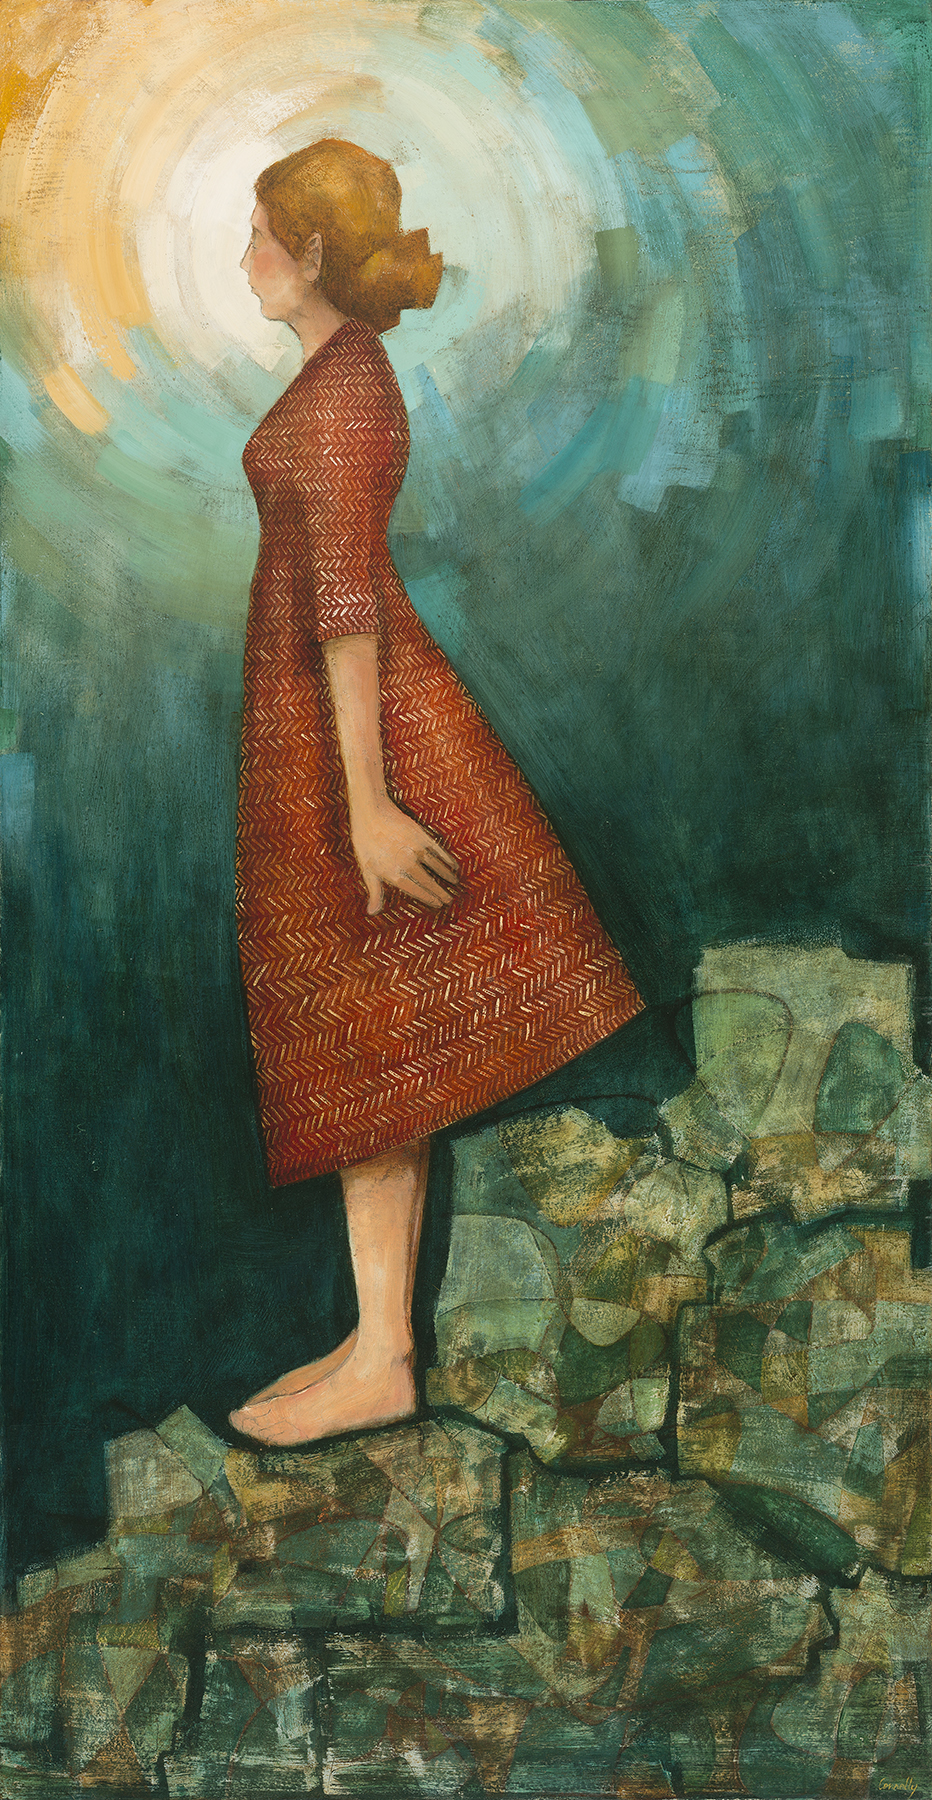 she stood with her burdens placed beneath her feet